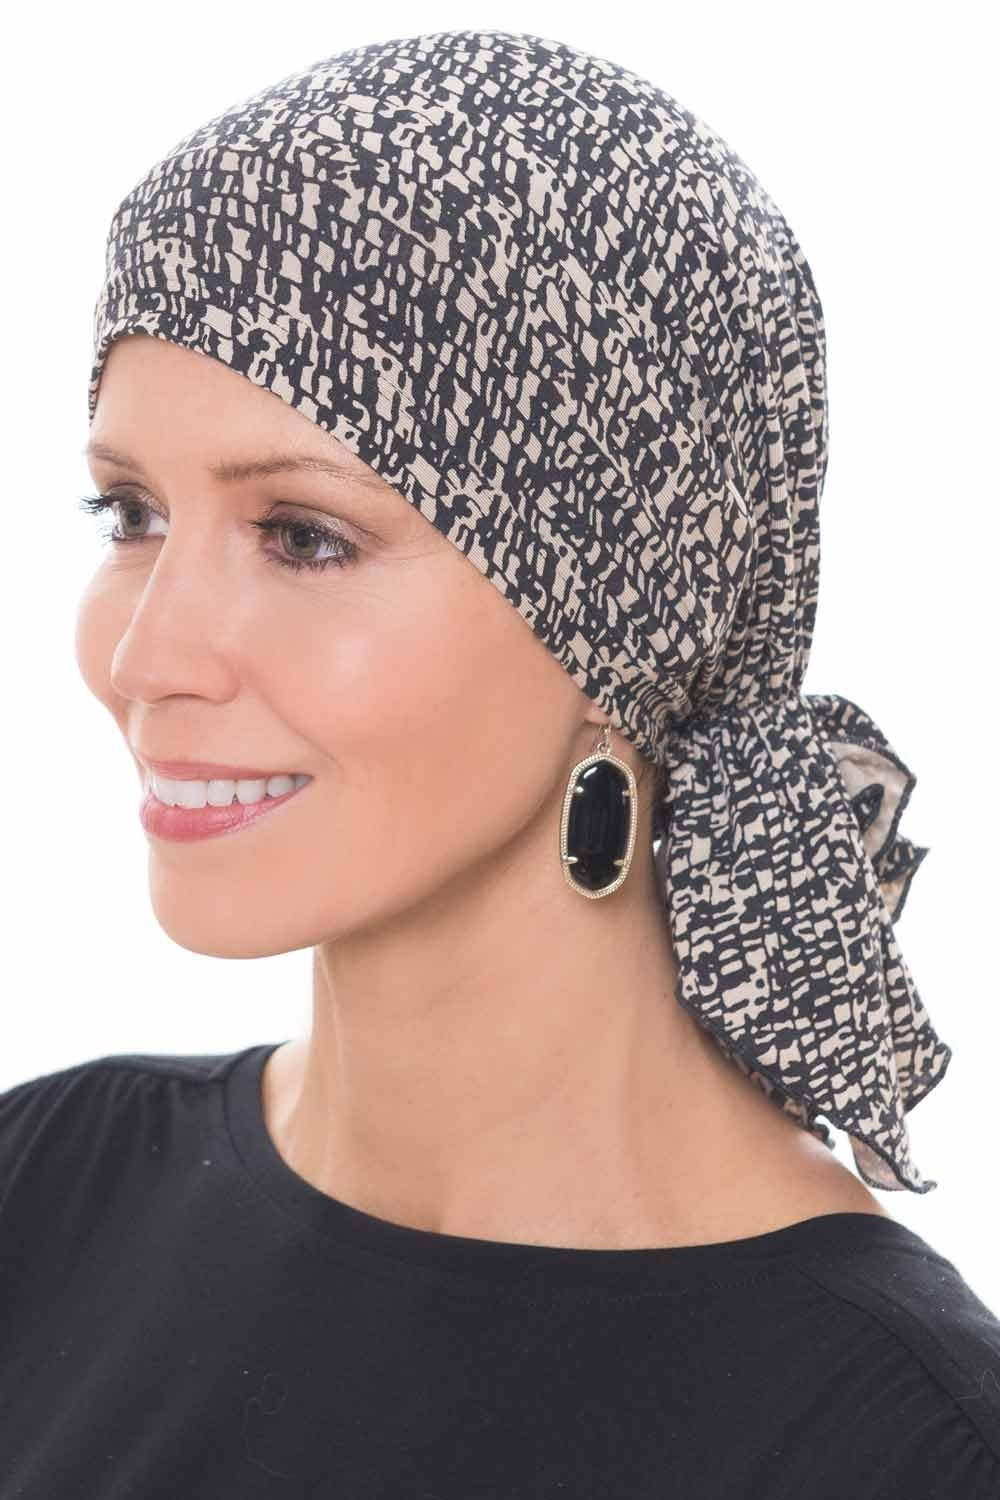 Slip-On Slinky Pre Tied Head Scarf - Scarves for Women with Cancer Chemo Luxury Bamboo - Mini Mosaic Black/Beige